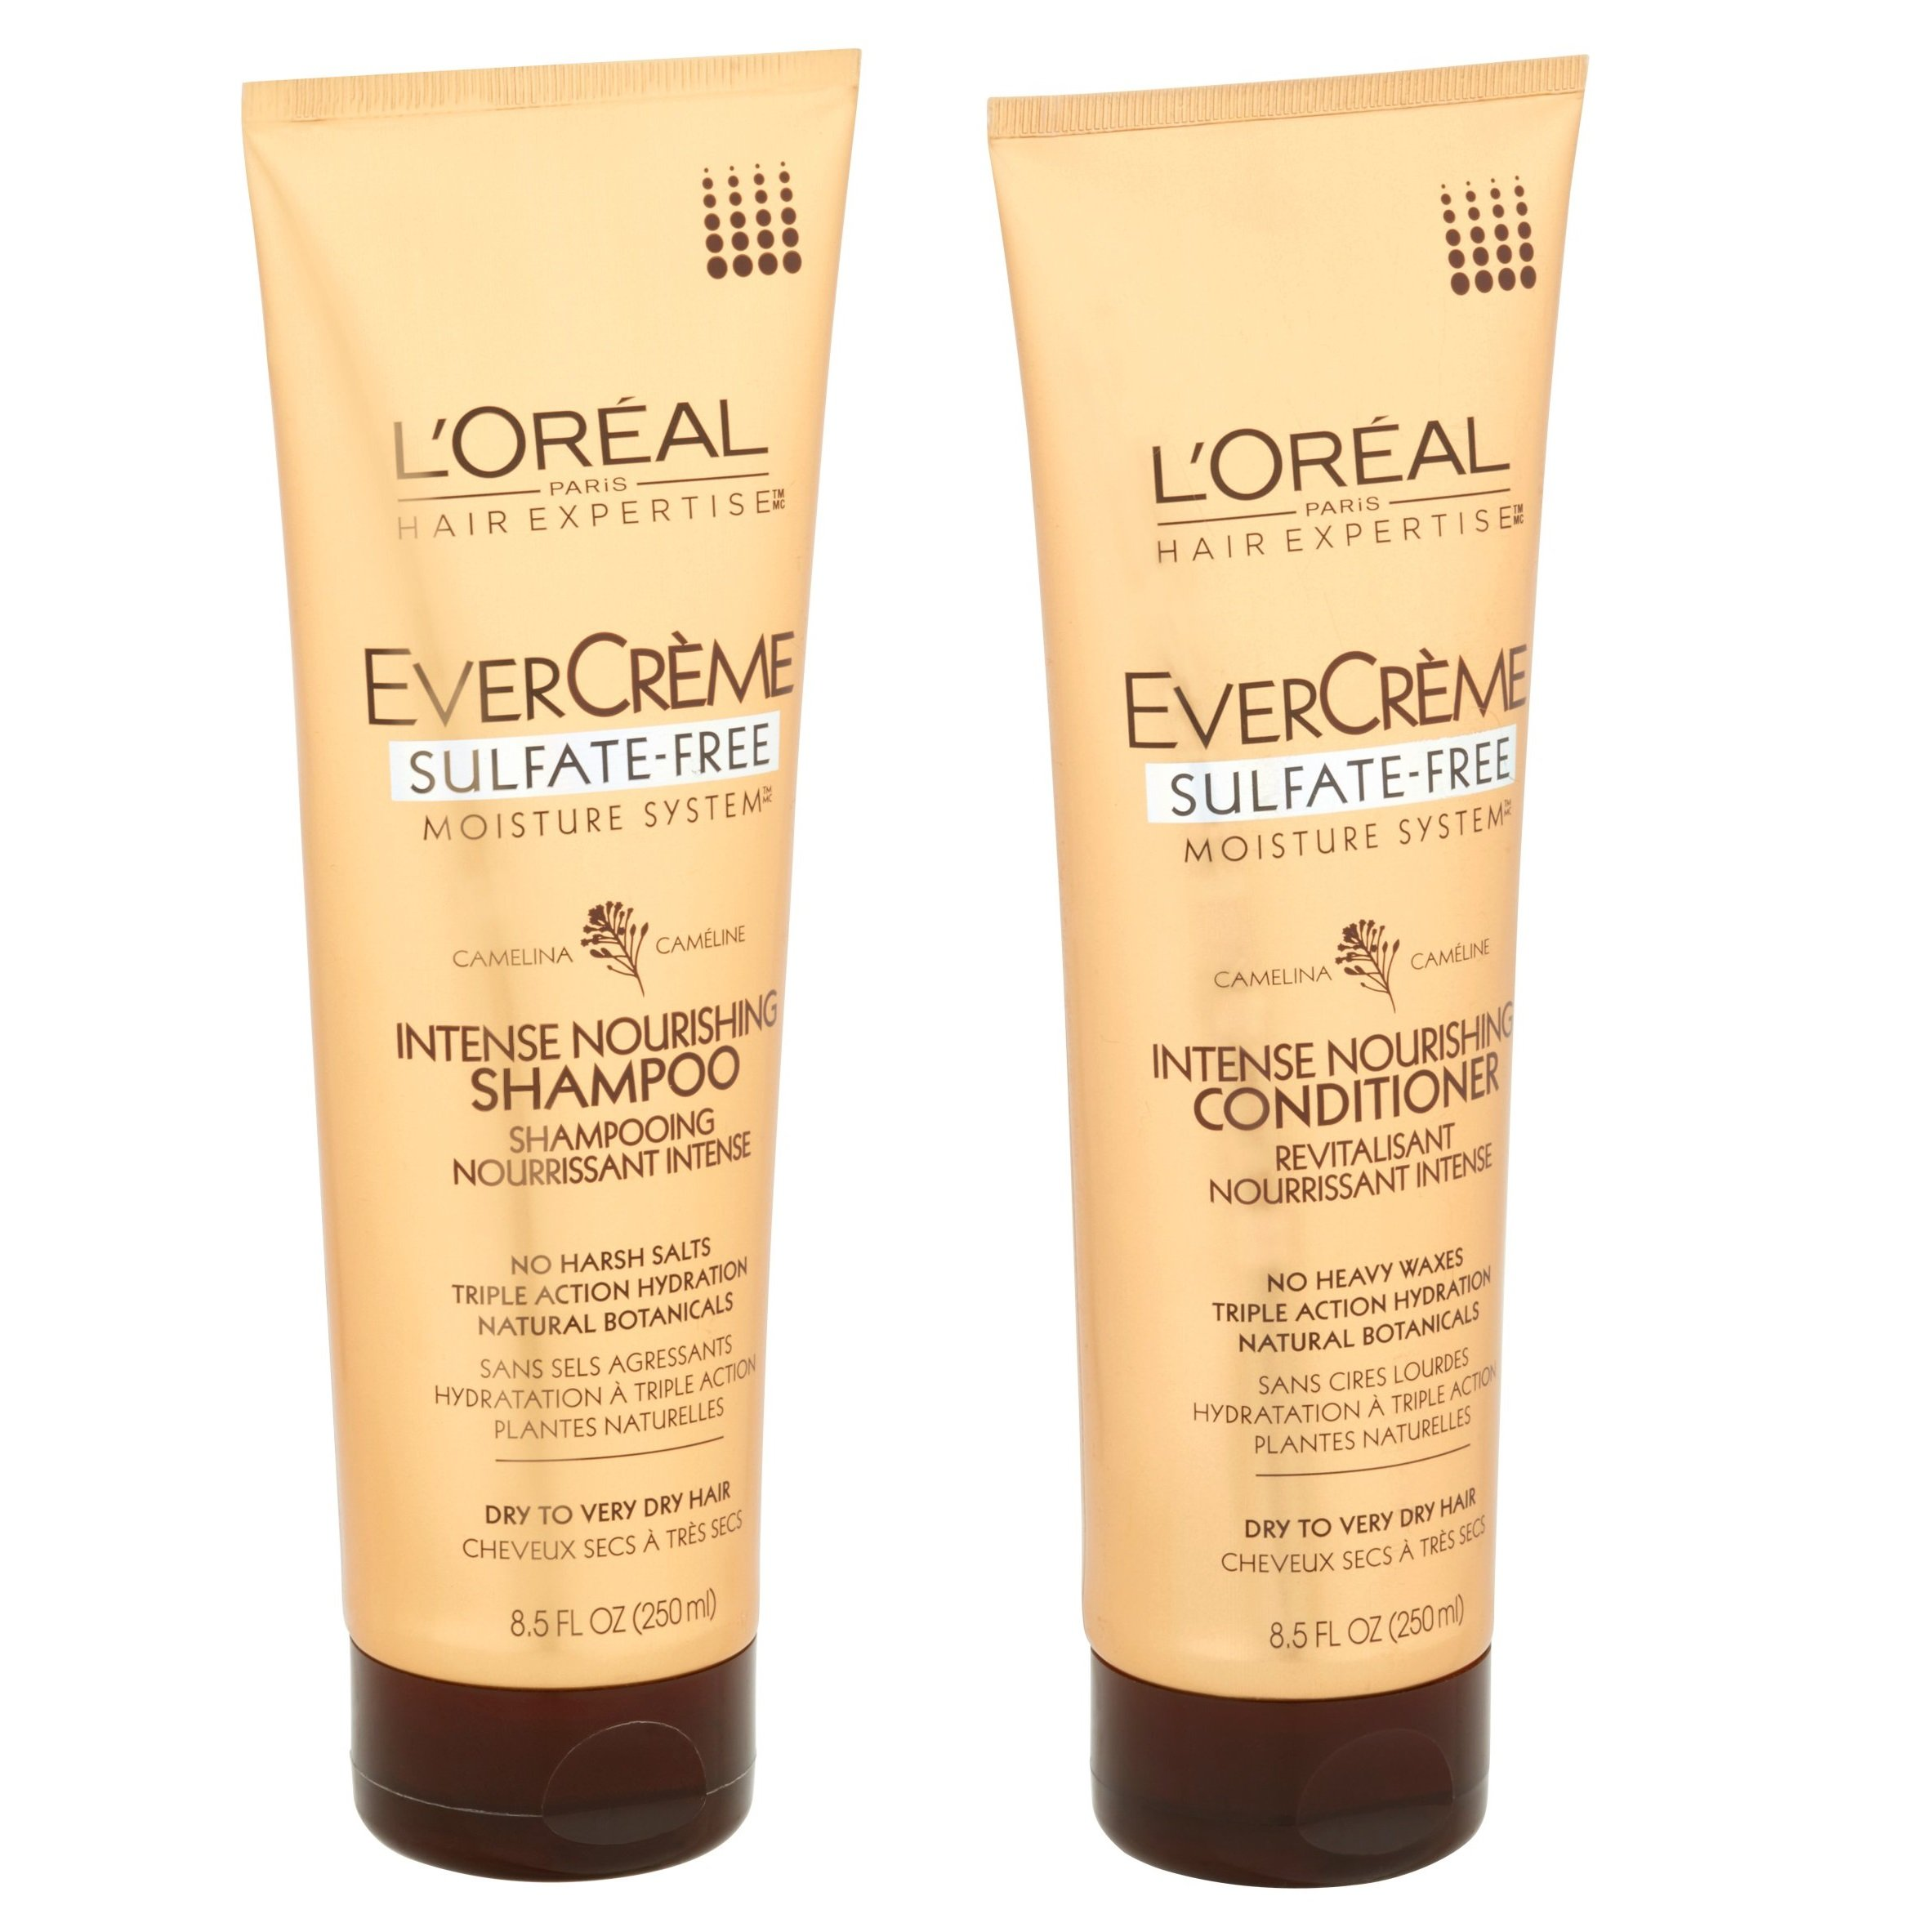 L'Oreal Paris EverCreme Sulfate-Free Moisture System Intense Nourishing, DUO set Shampoo + Conditioner, 8.5 Ounce, 1 each